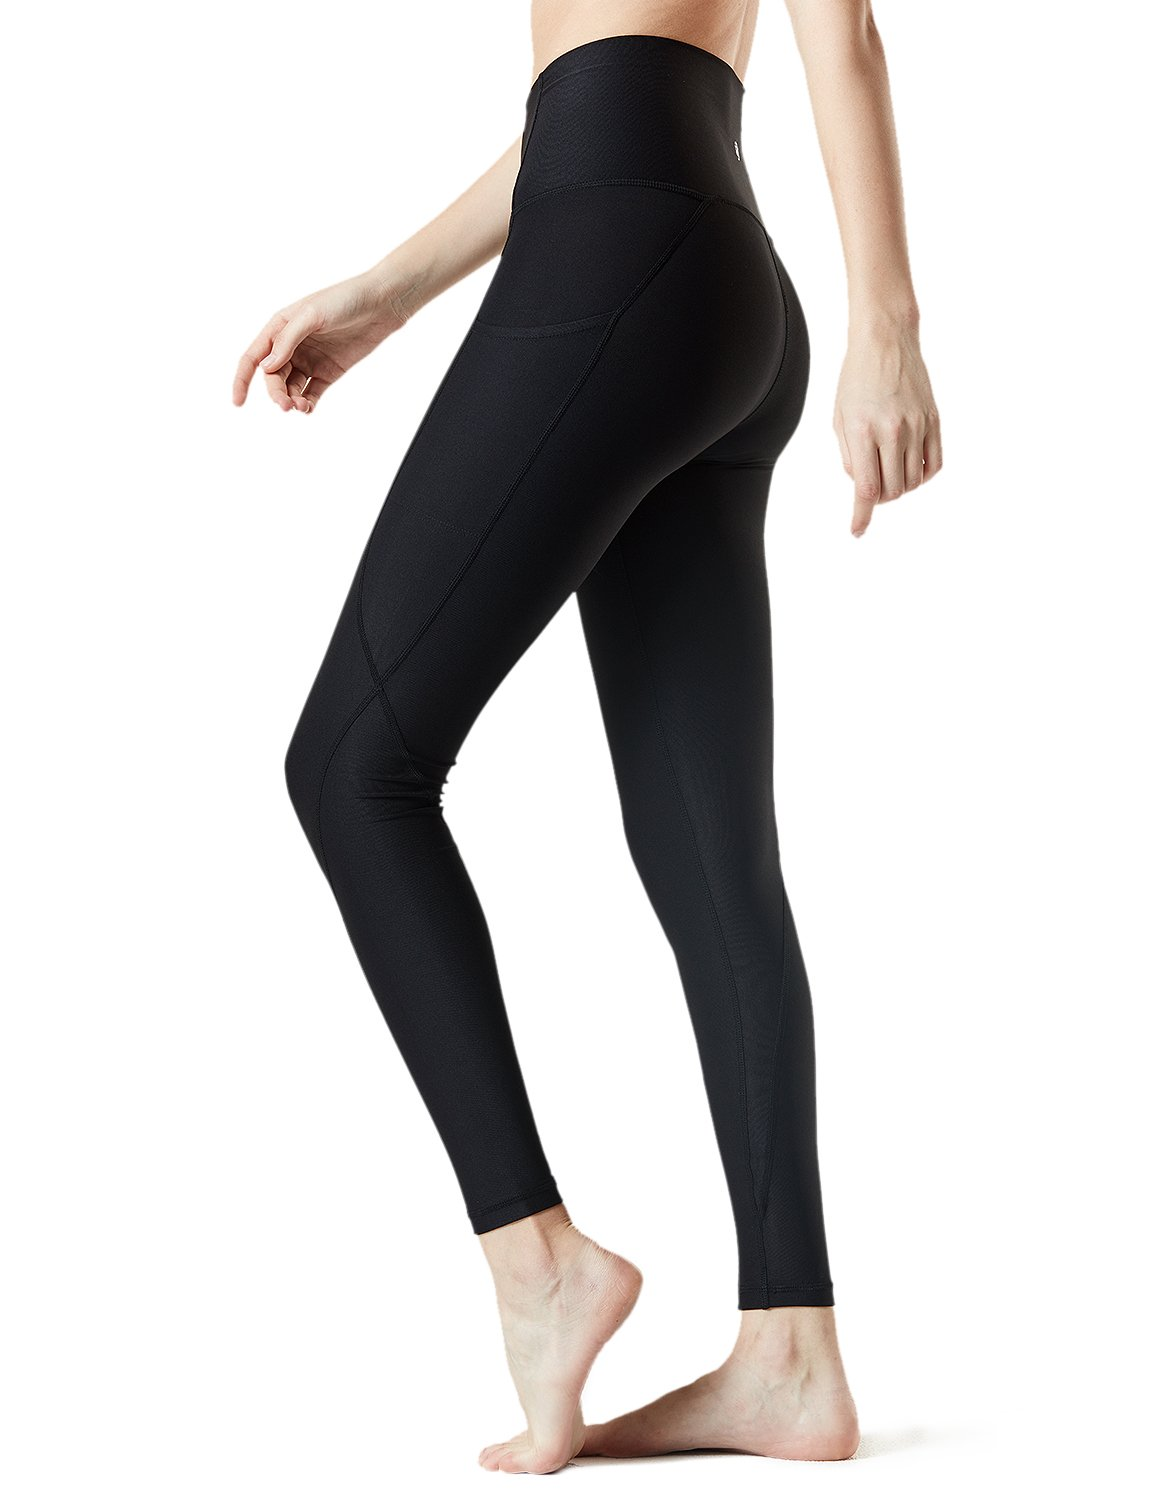 Tesla Yoga Pants High Waist Tummy Control w Hidden Pocket FYP52 FYP54 FYP56 FYP42